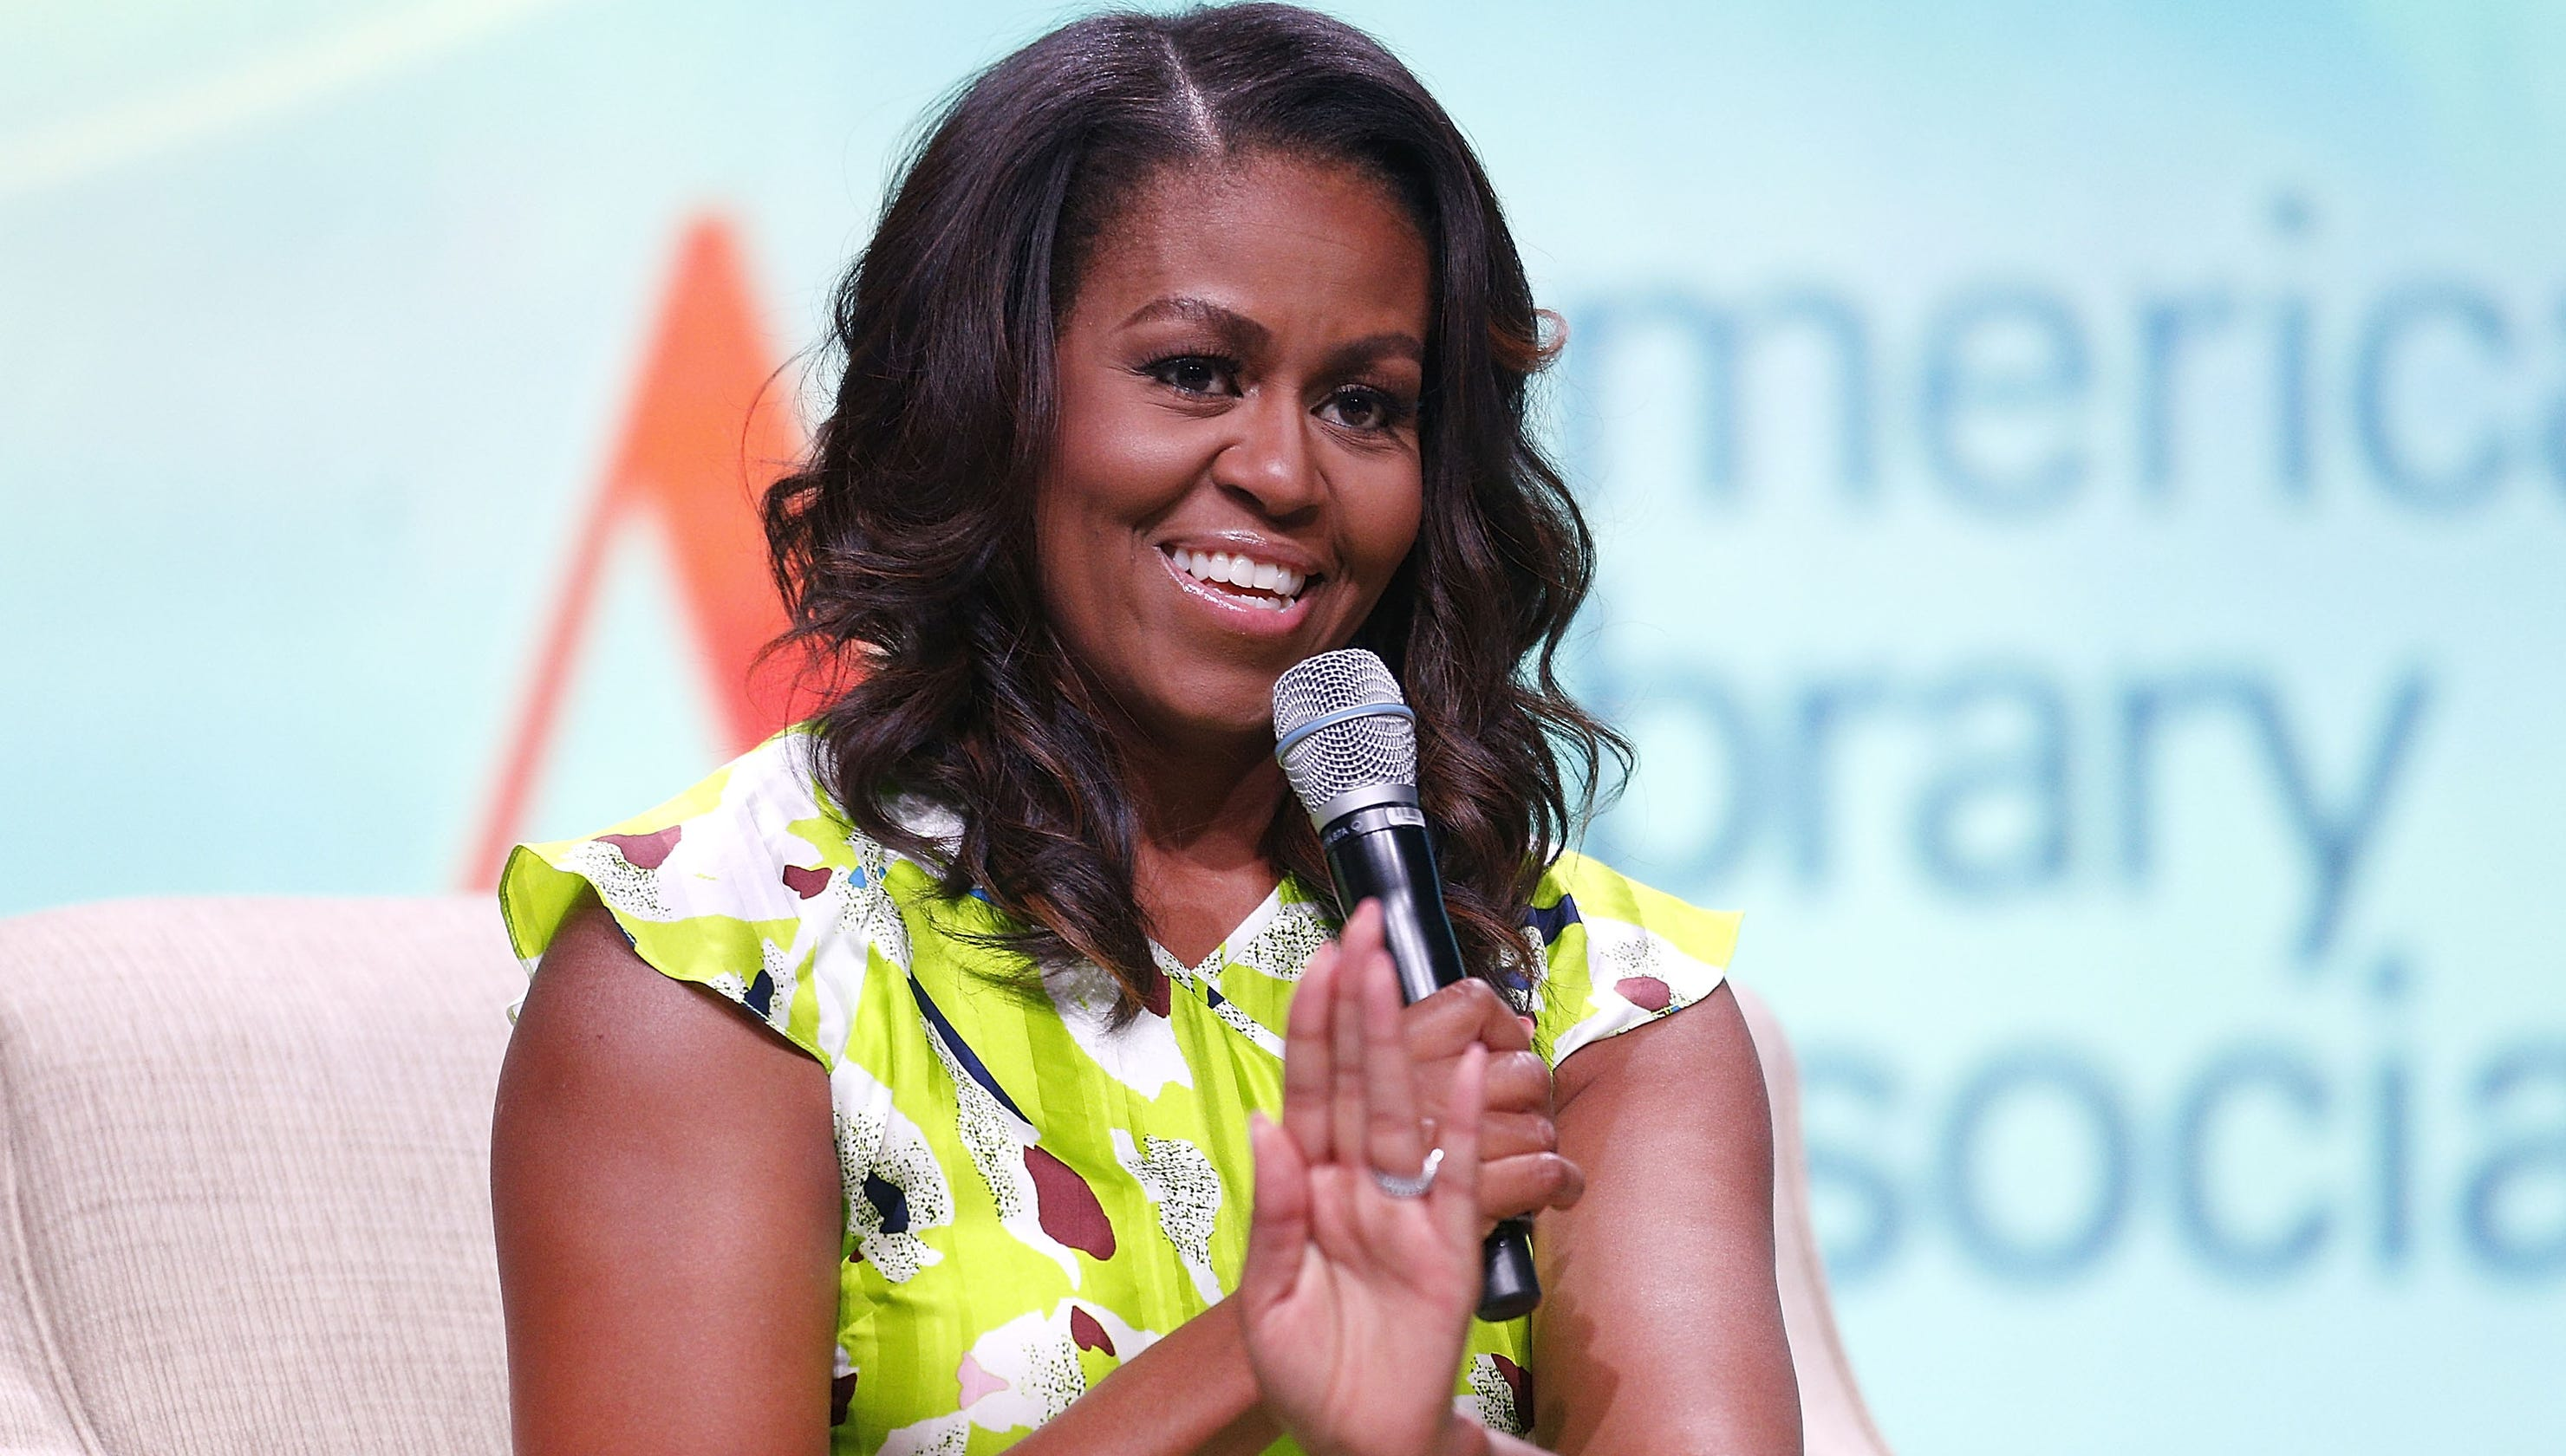 Michelle Obama Criticizes President Trump In Memoir